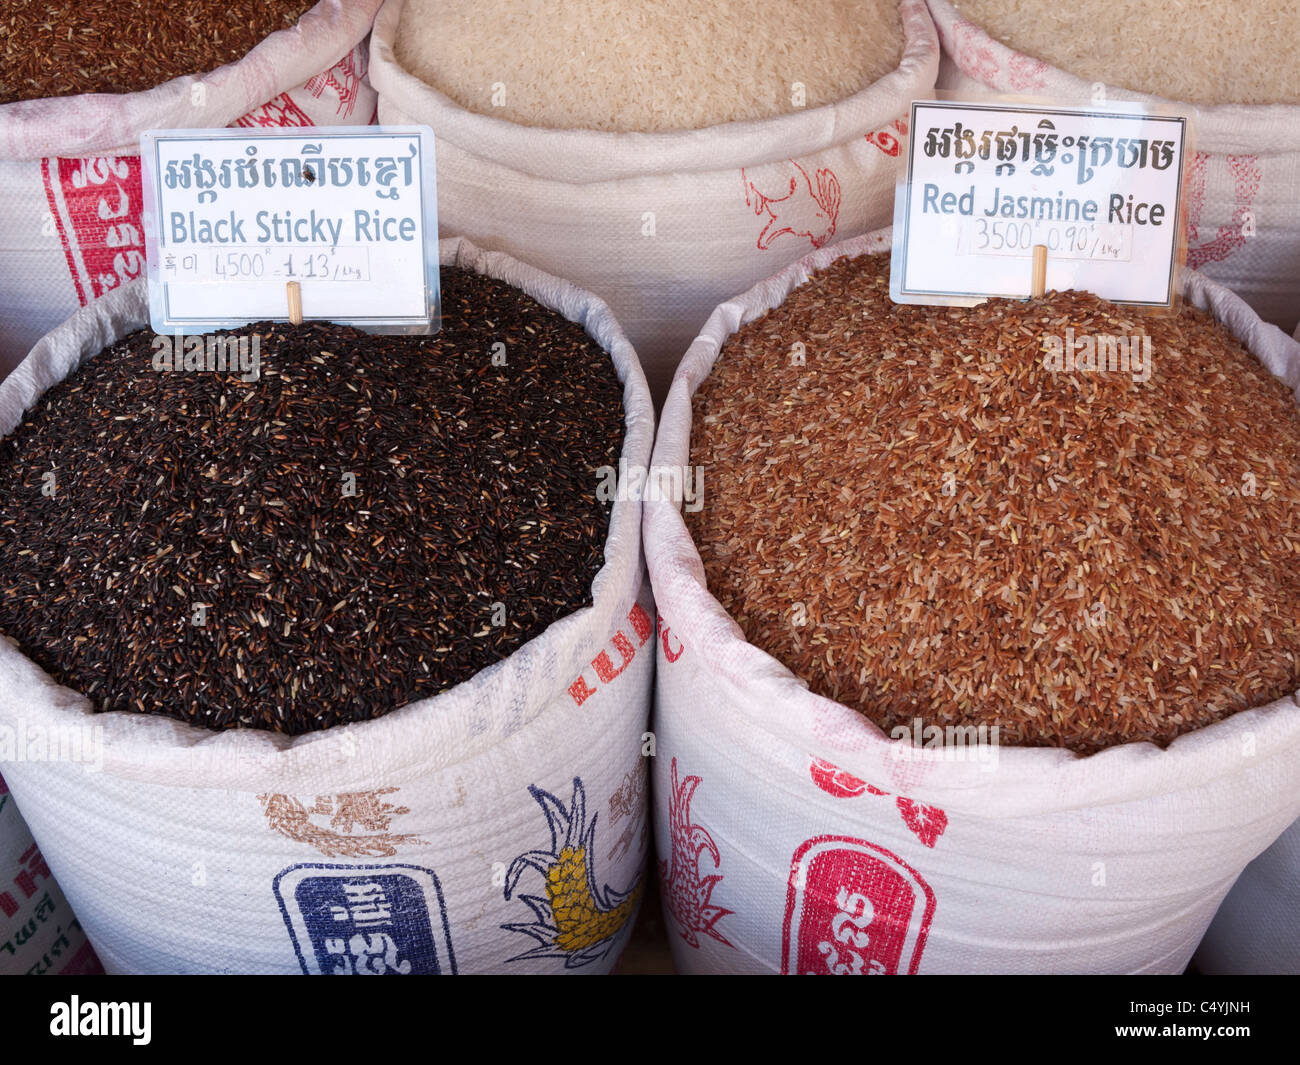 Sacks of black sticky rice and red jasmine rice for sale at the Old Market, Siem Reap, Cambodia - Stock Image